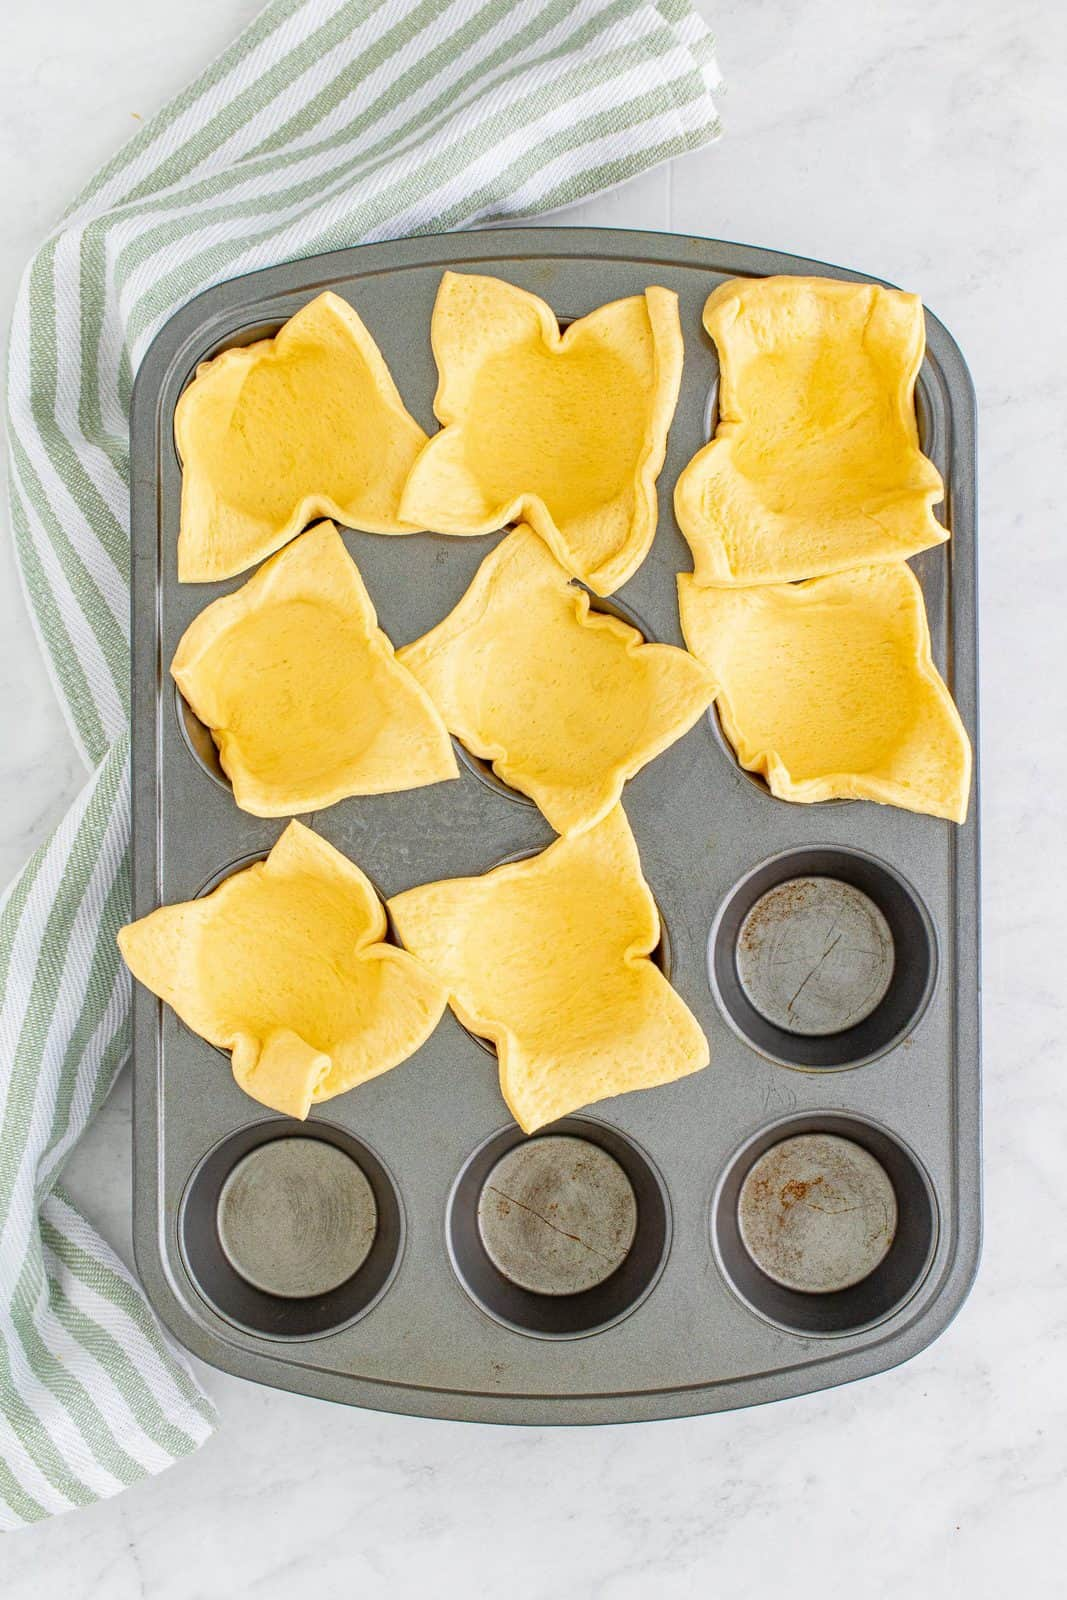 Crescent dough cut into squares and pressed into muffin tin.